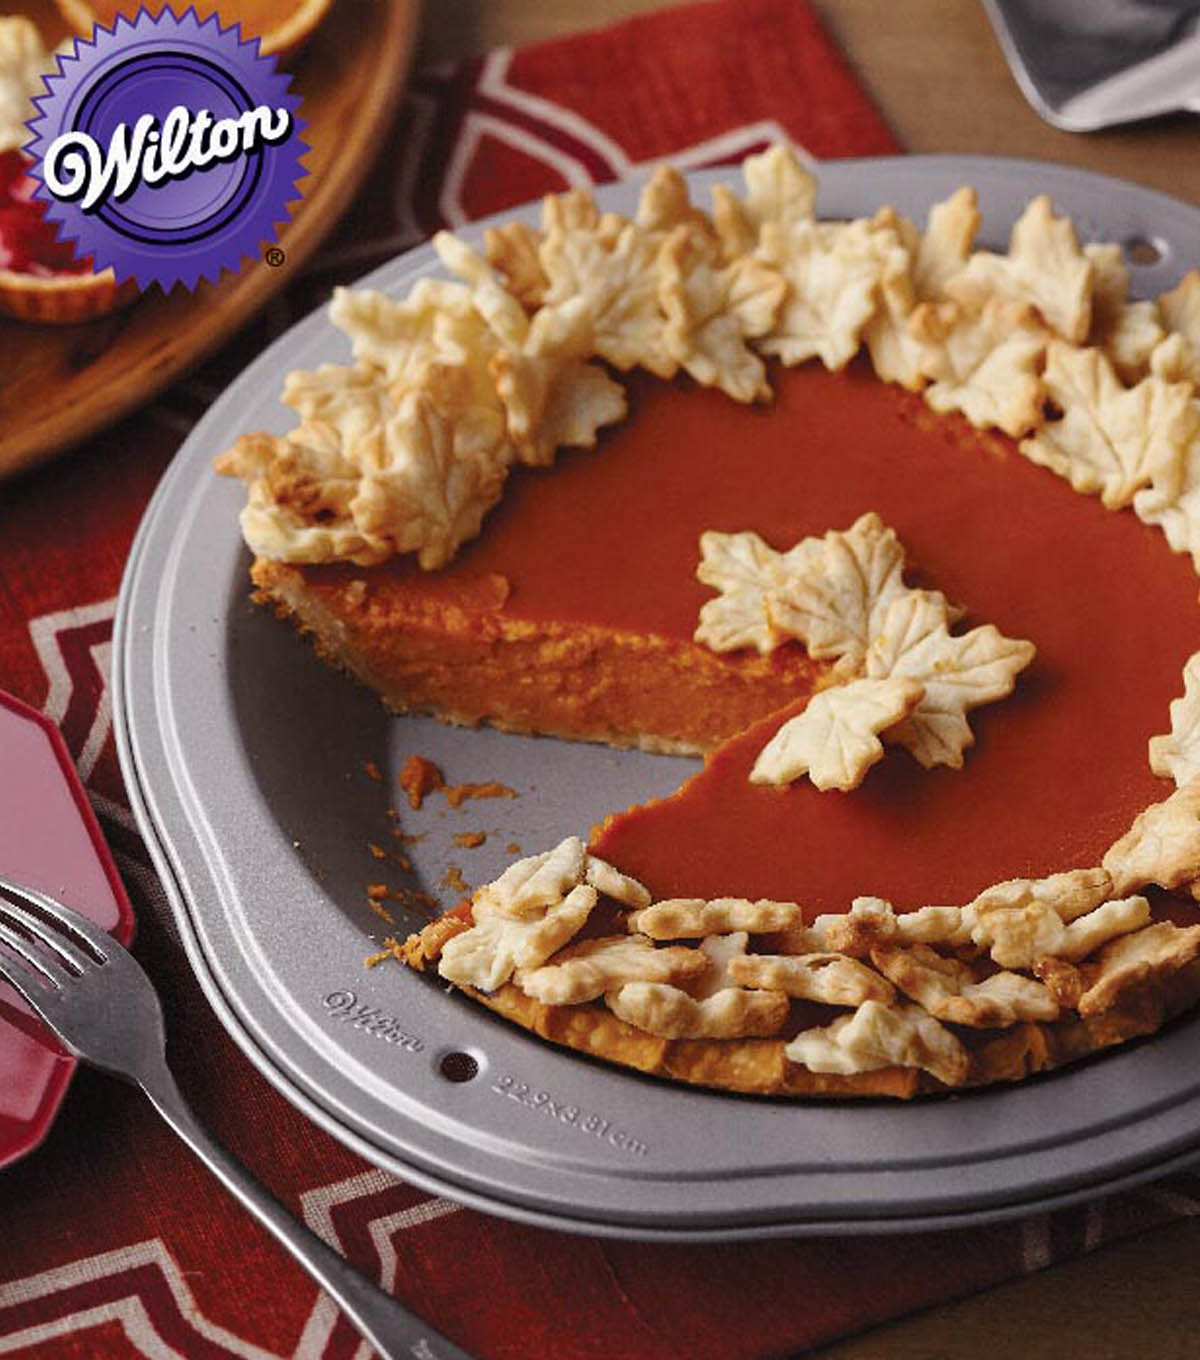 Fall Pie Recipes  Pumpkin Pie with Fall Leaves Pastry Cutouts JoAnn